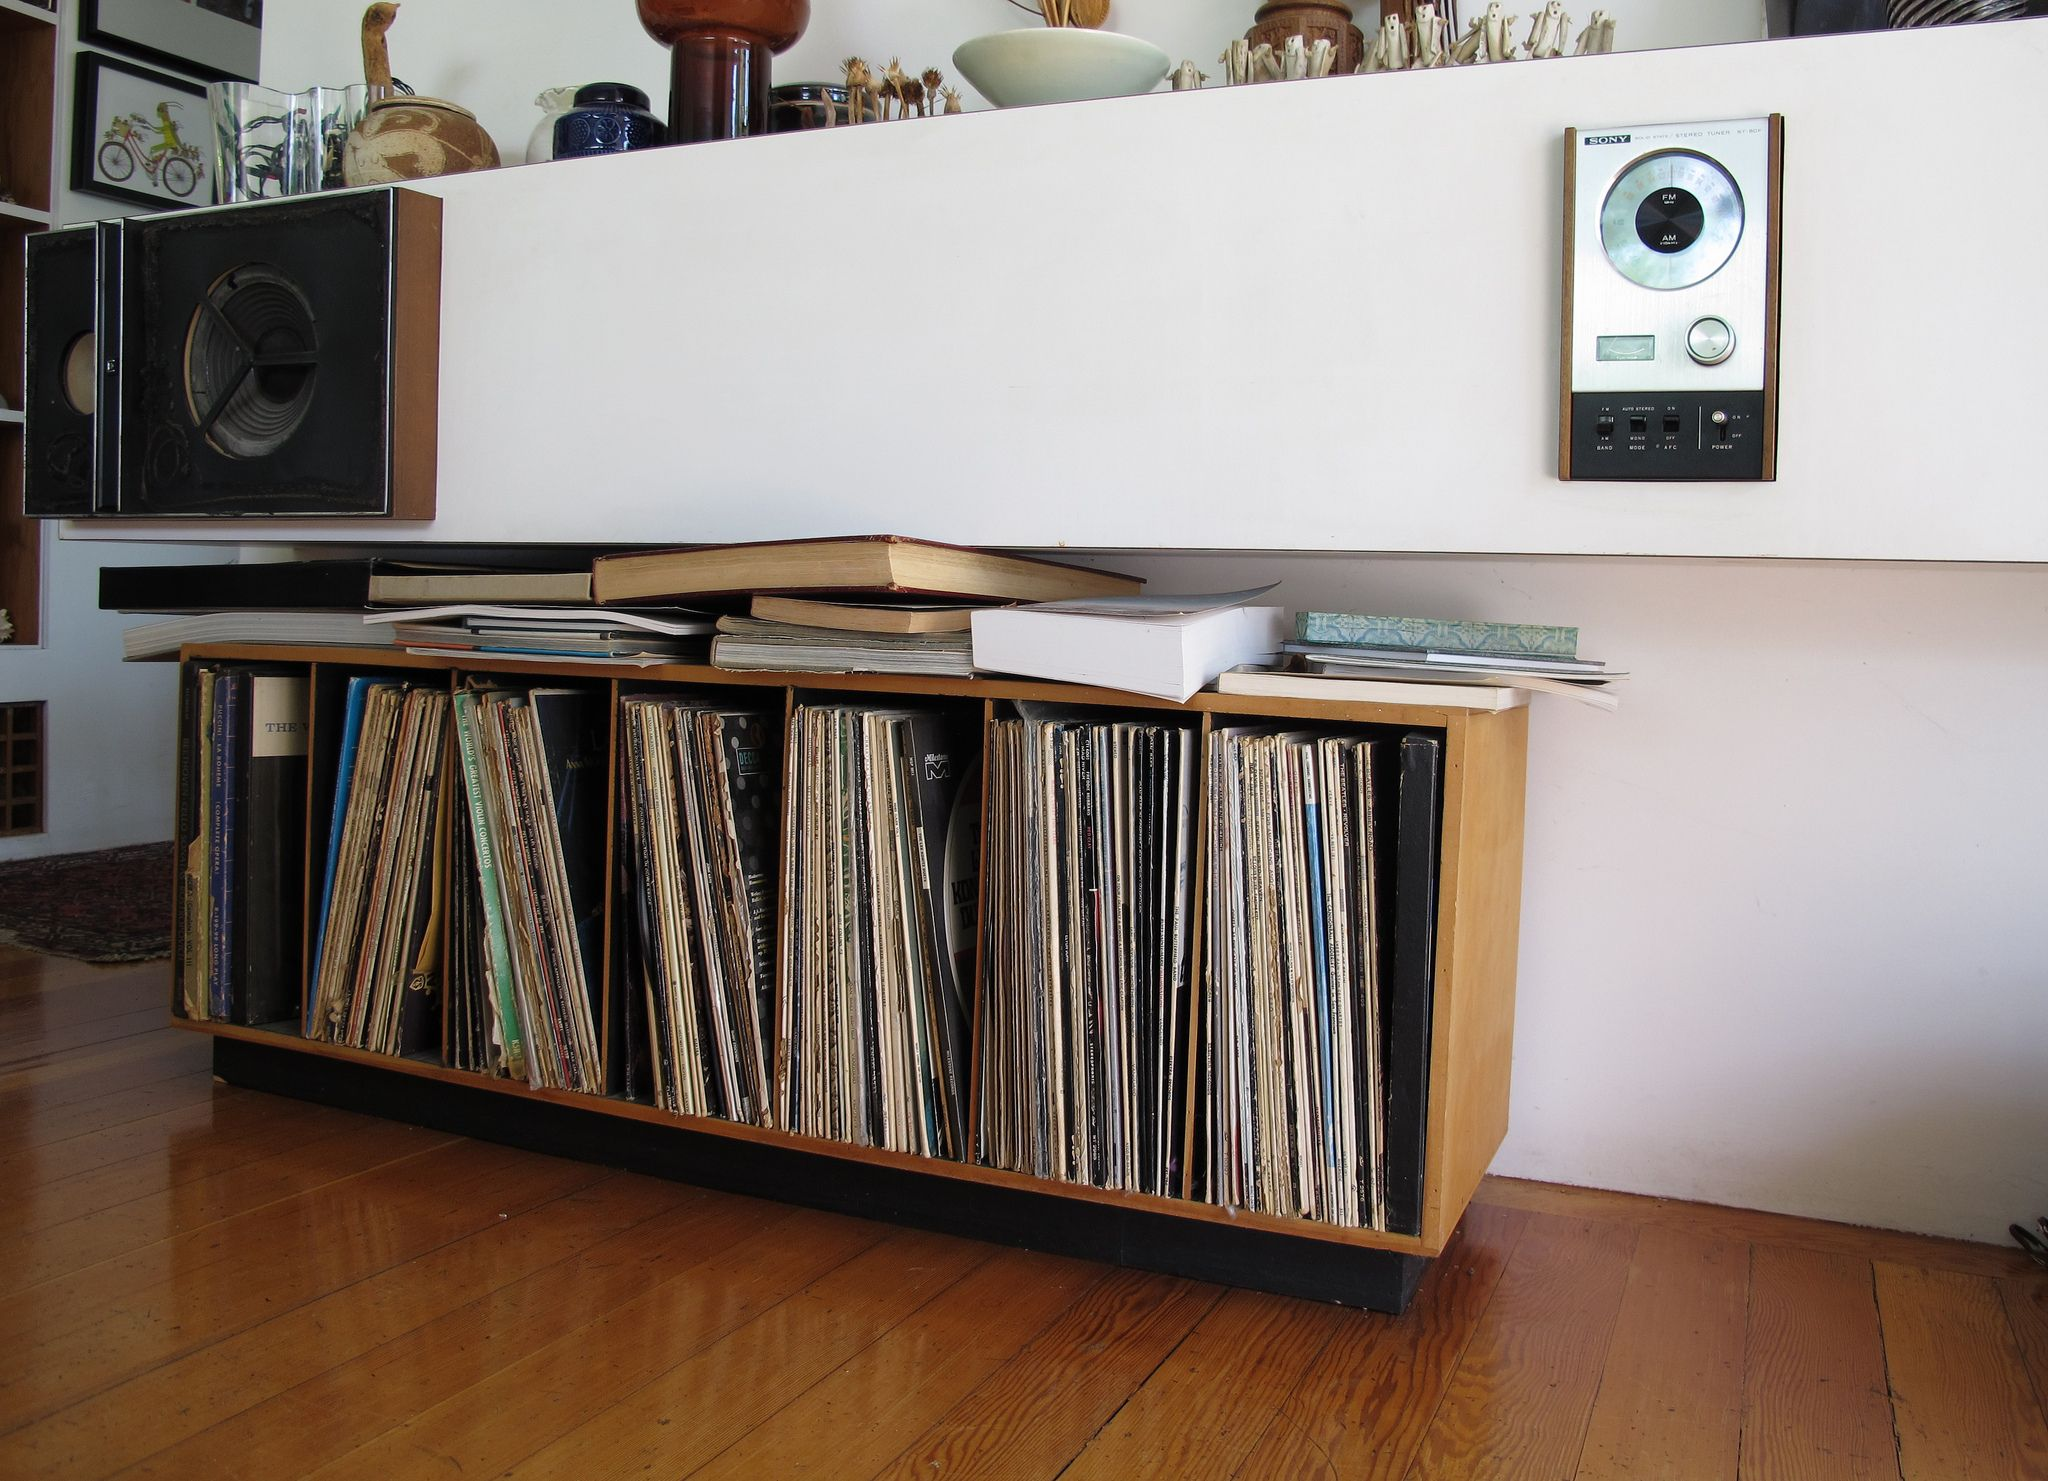 Another Idea For A Shelf To Hold Record Playerrecords